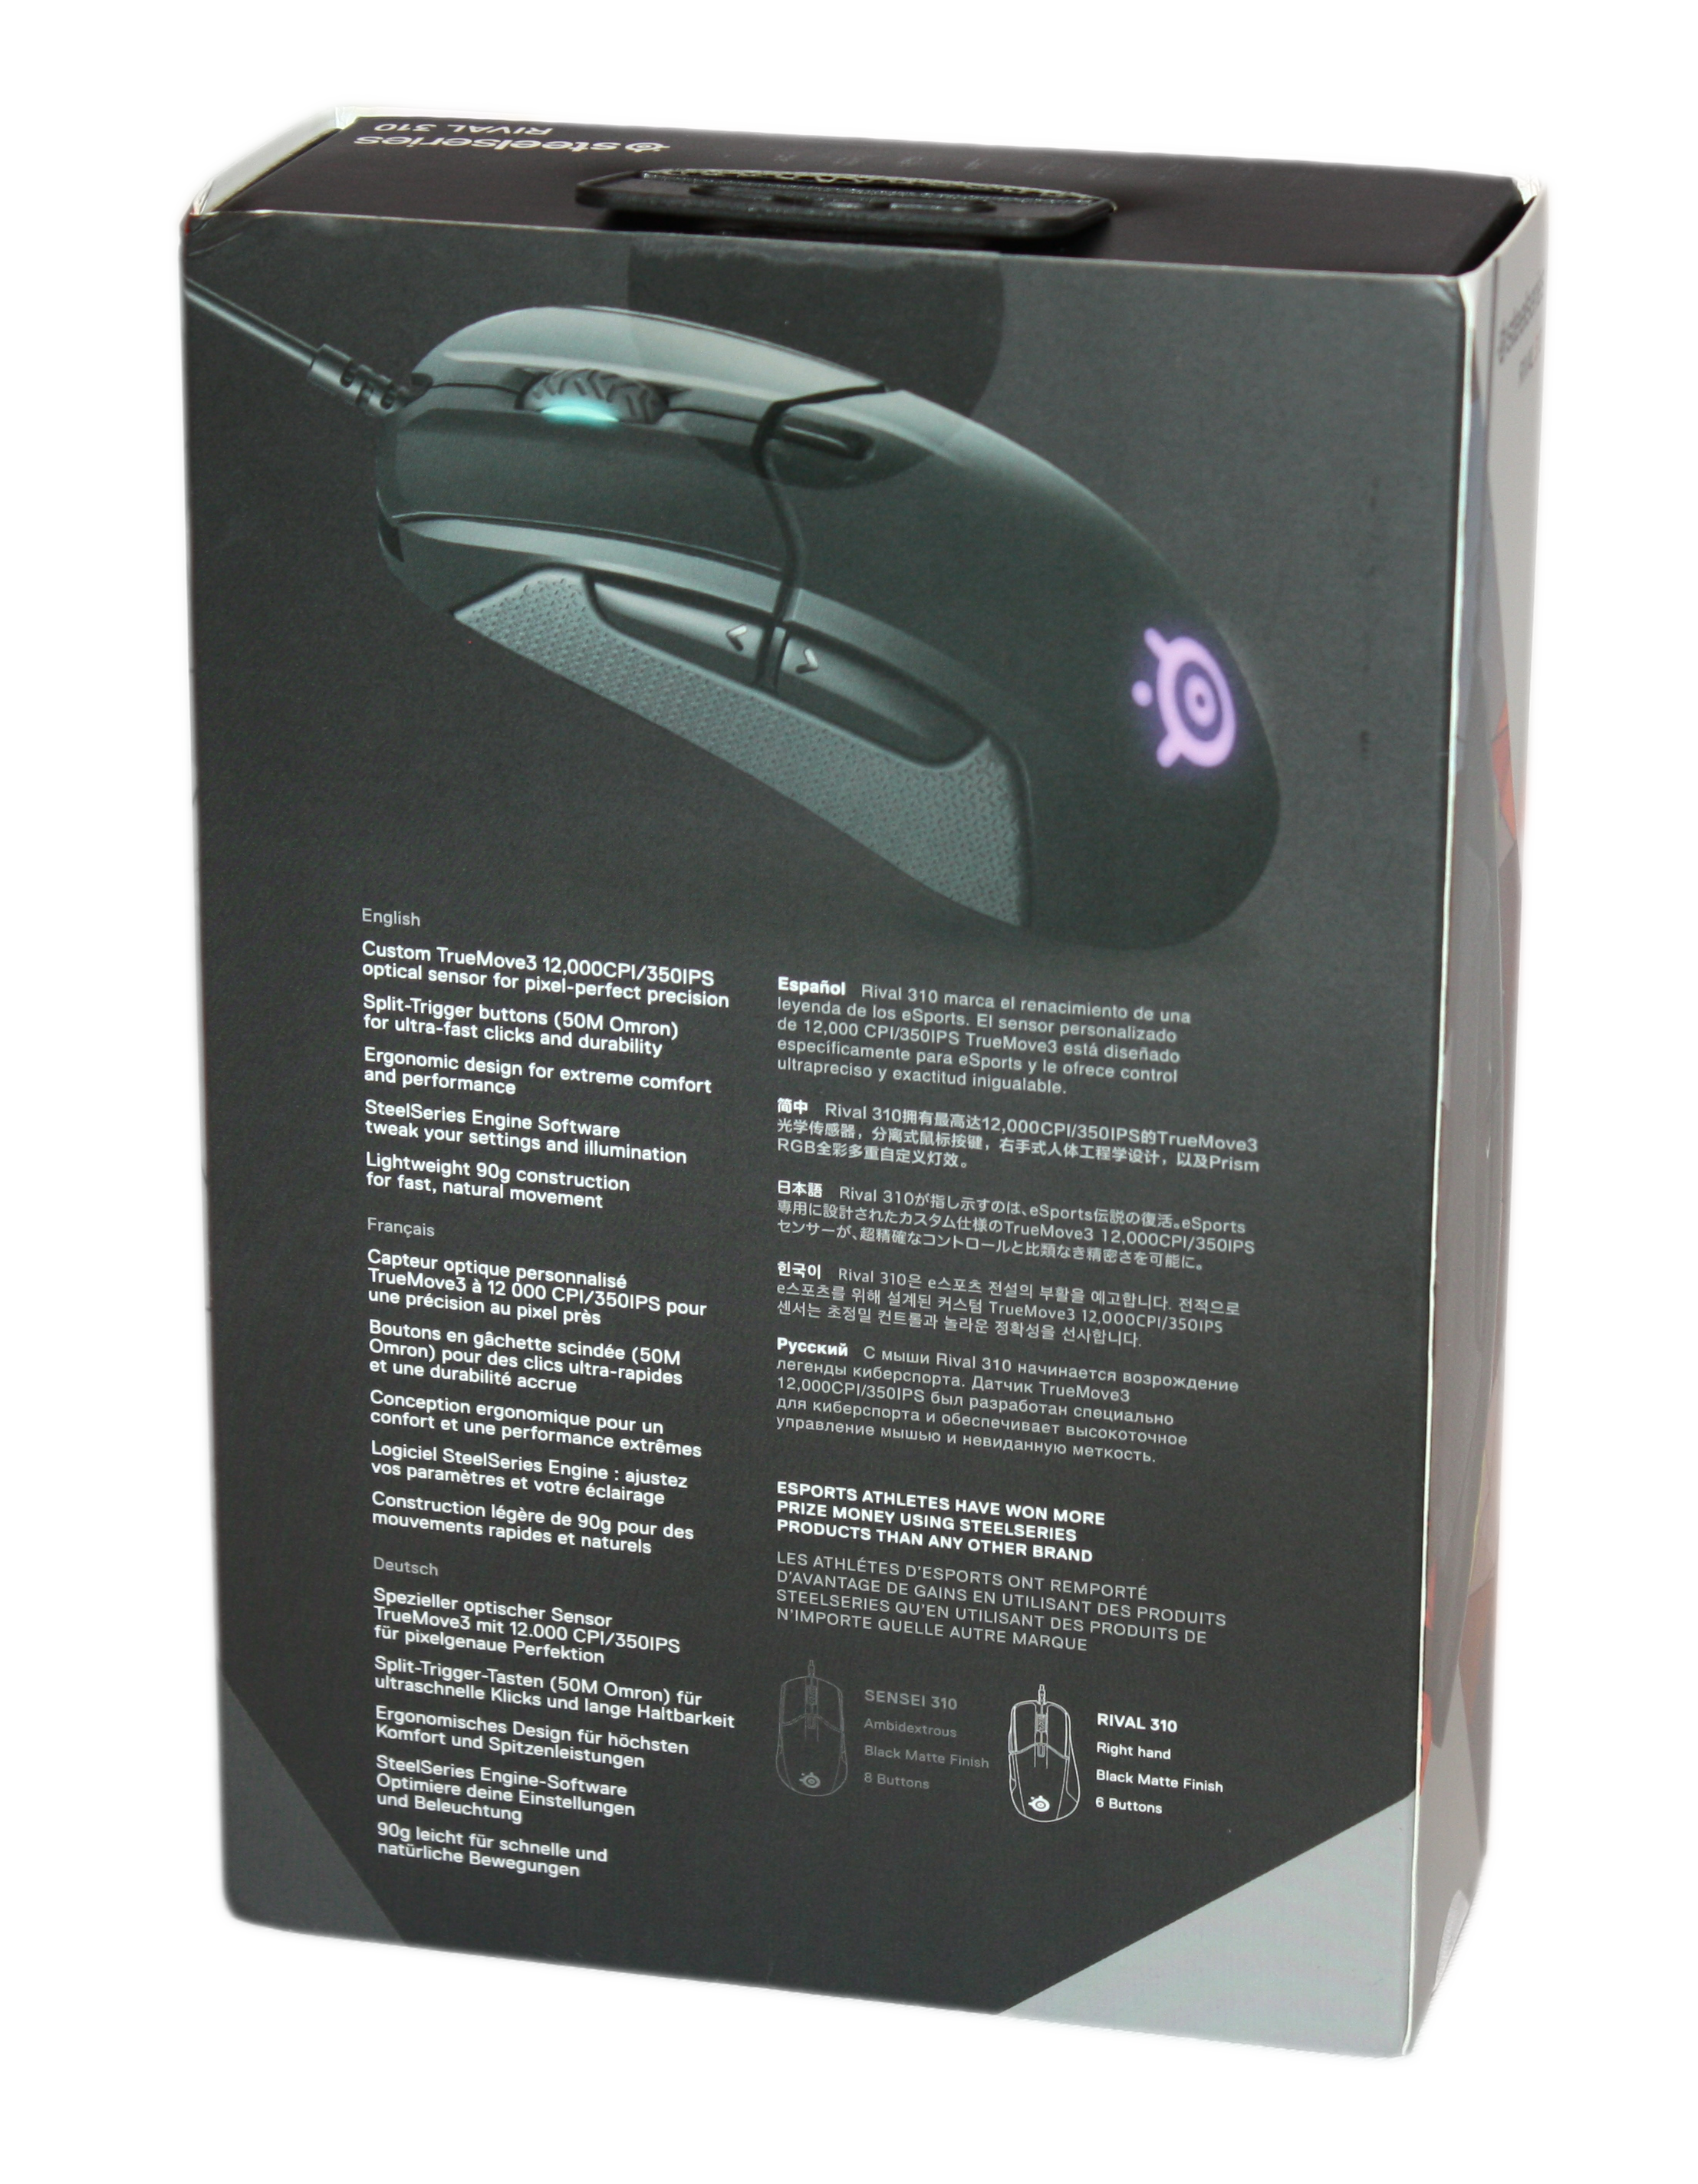 OCN Labs] SteelSeries Rival 310 Mouse Review by William